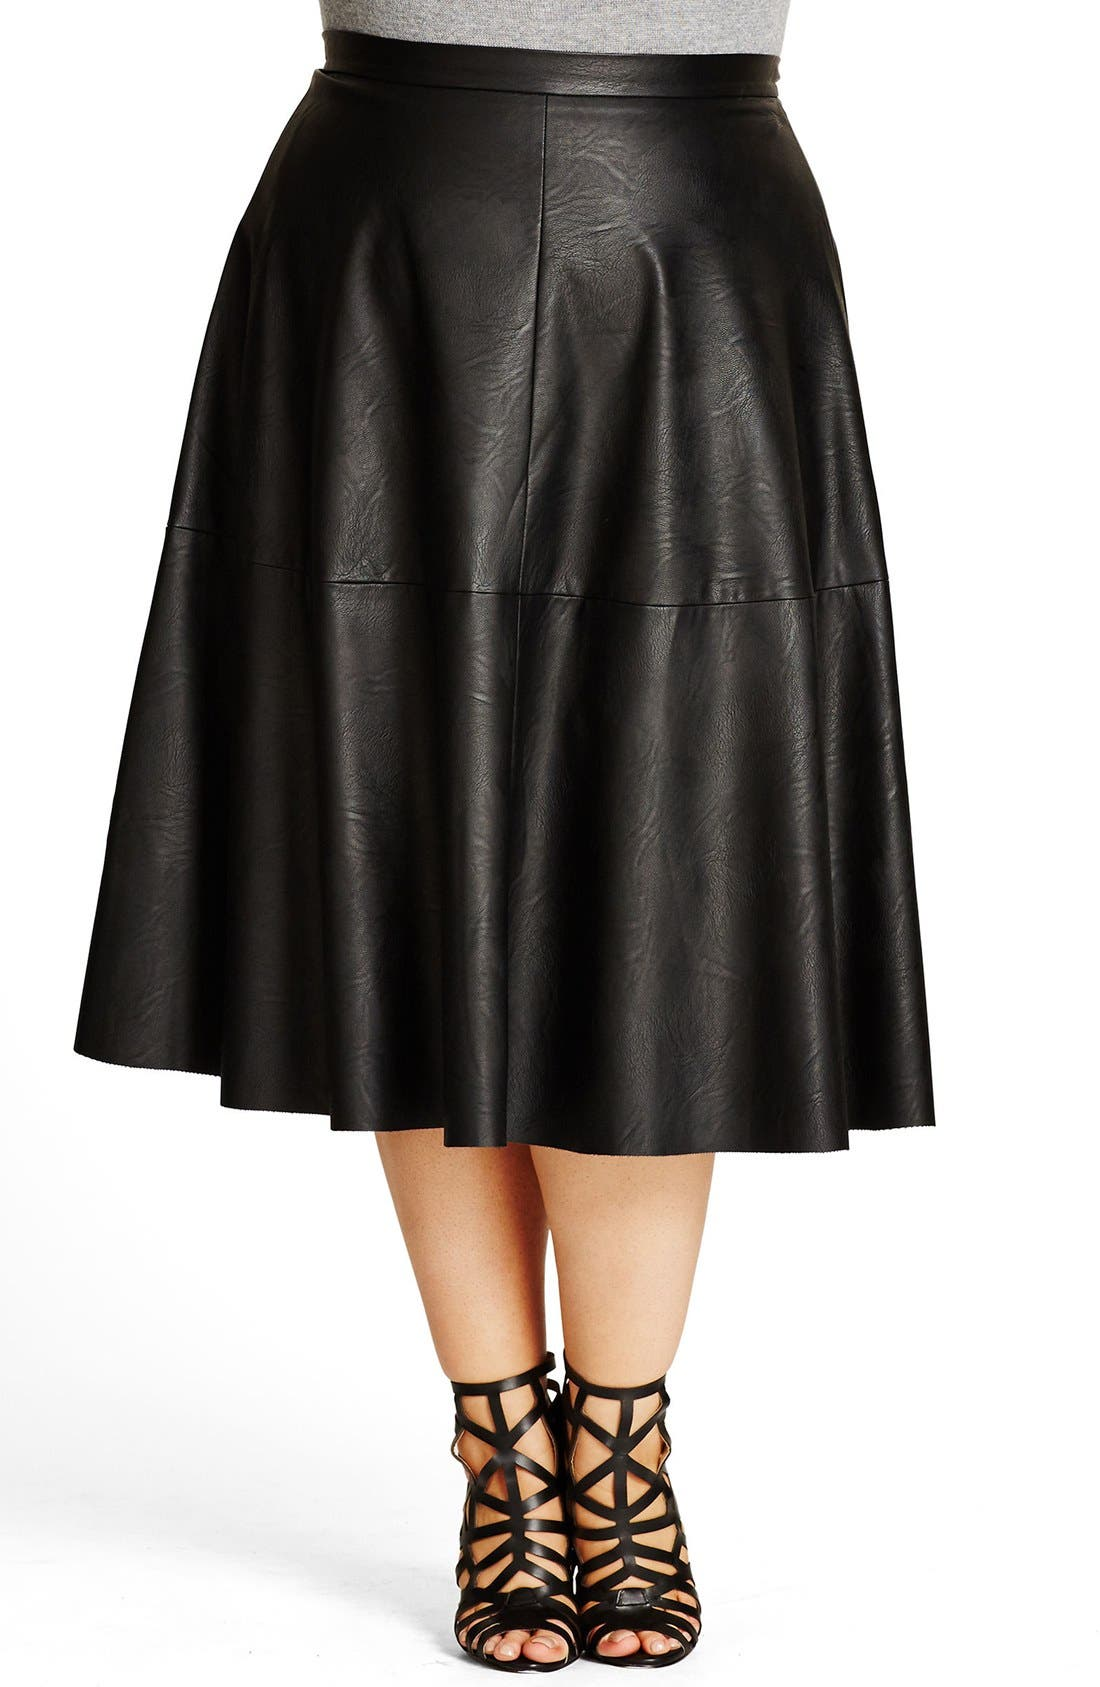 CITY CHIC Flirt Faux Leather Midi Skirt